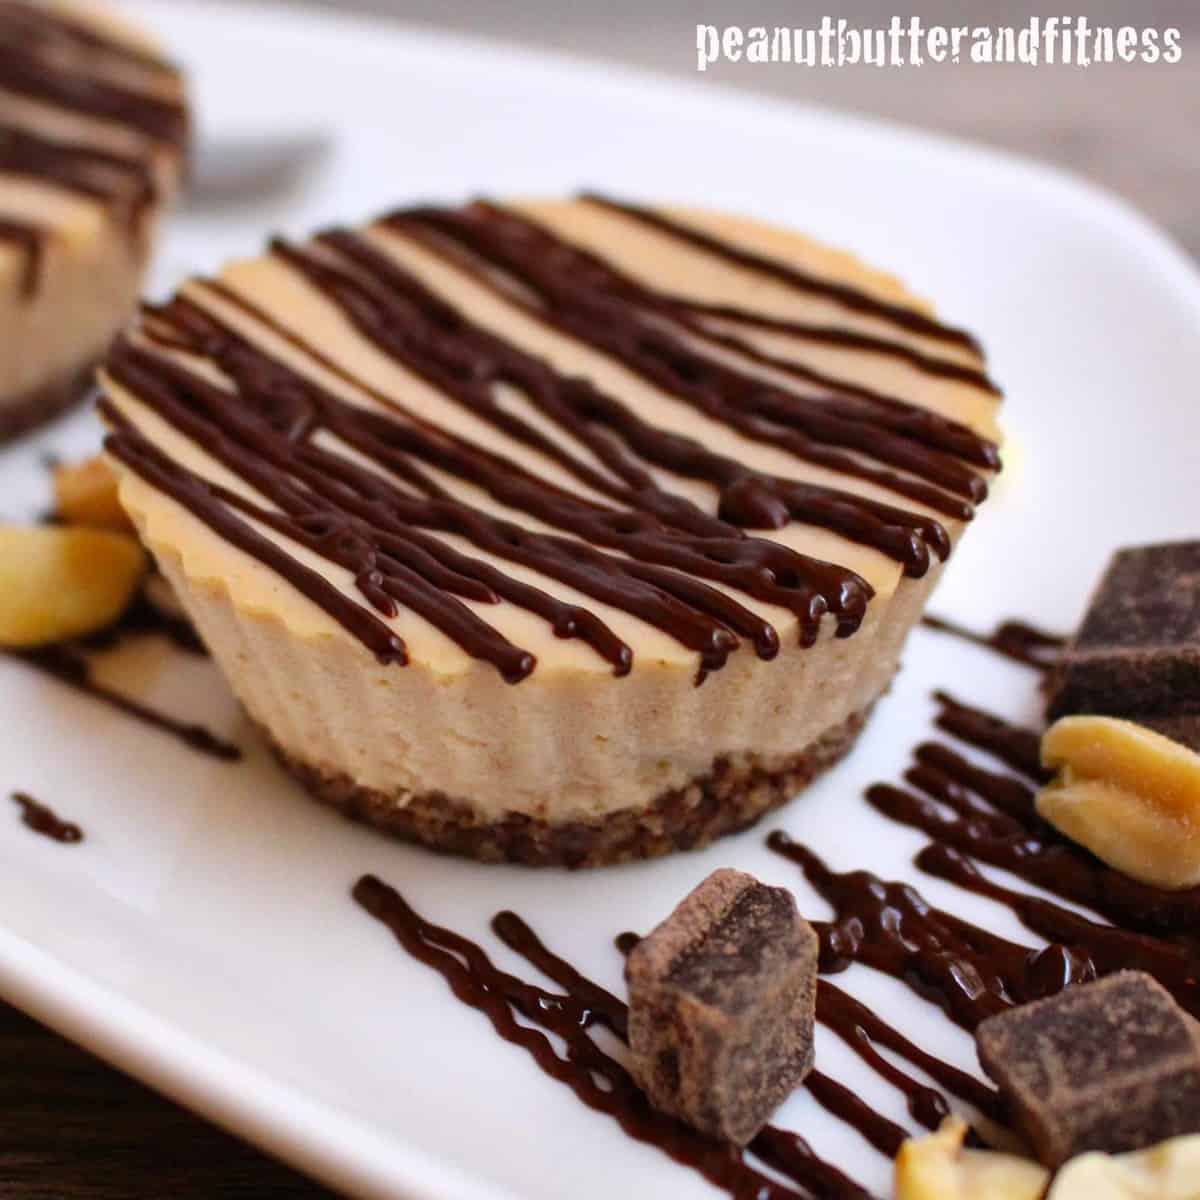 Love peanut butter but not the fat? Make one of these peanut flour recipes (pb2) for a delicious, peanuty treat that's high in protein and healthy!